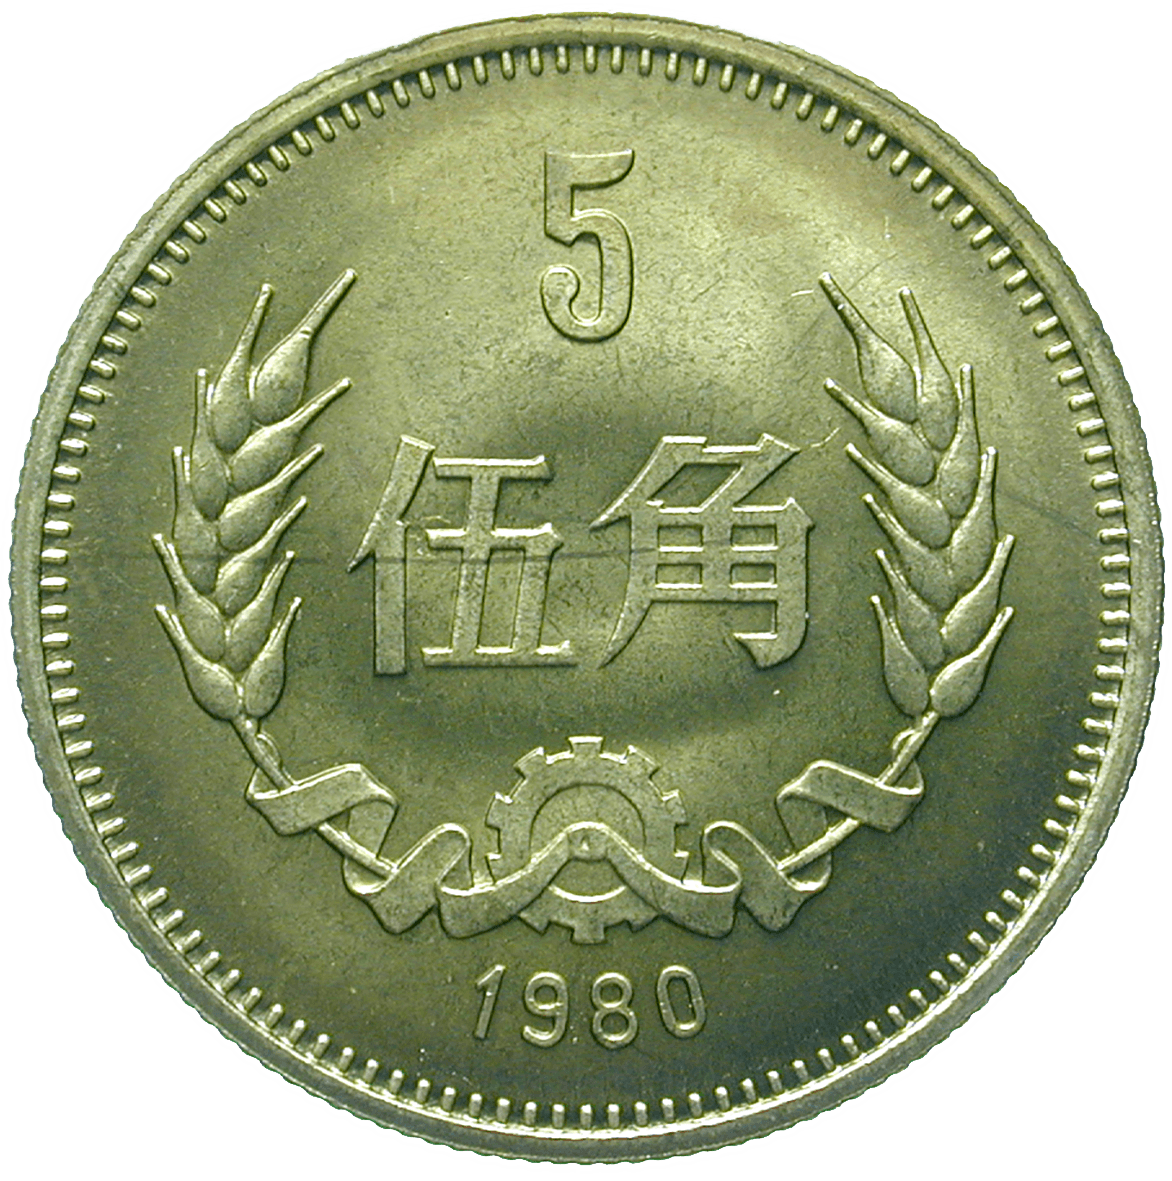 Volksrepublik China, 5 Jiao 1980 (reverse)